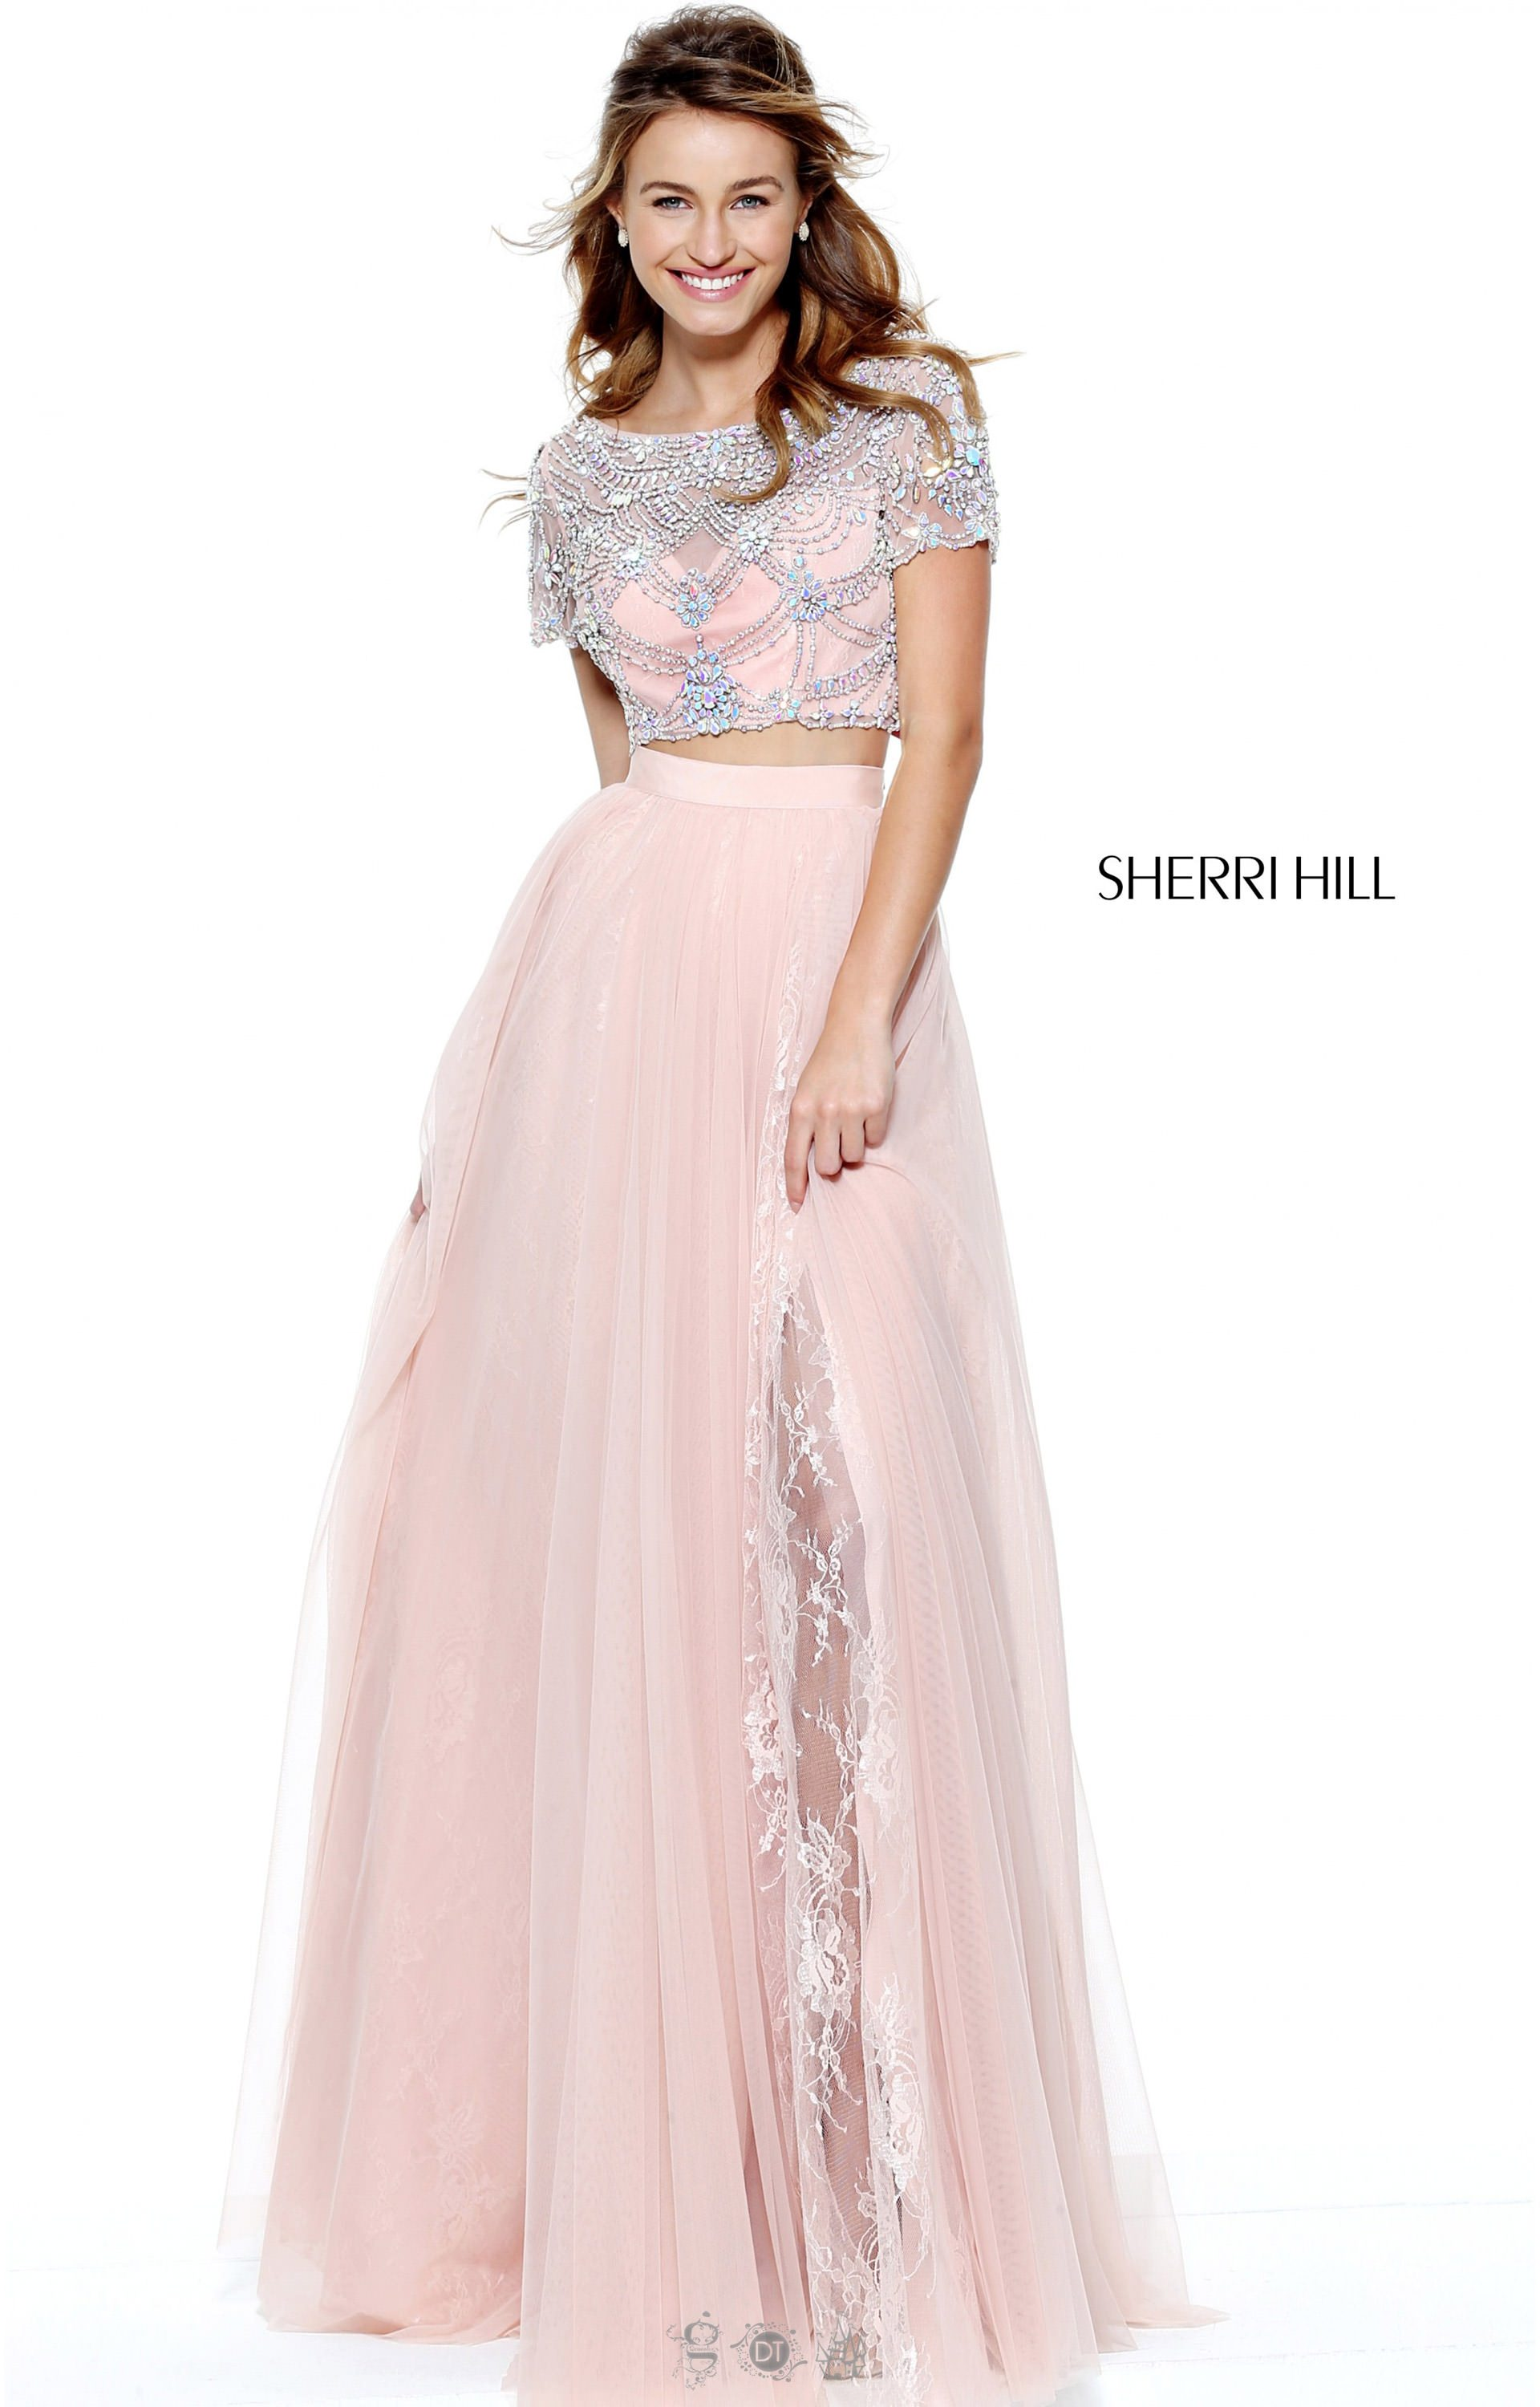 Sherri Hill 50857 - Two-Pice with Cap Sleeves Prom Dress